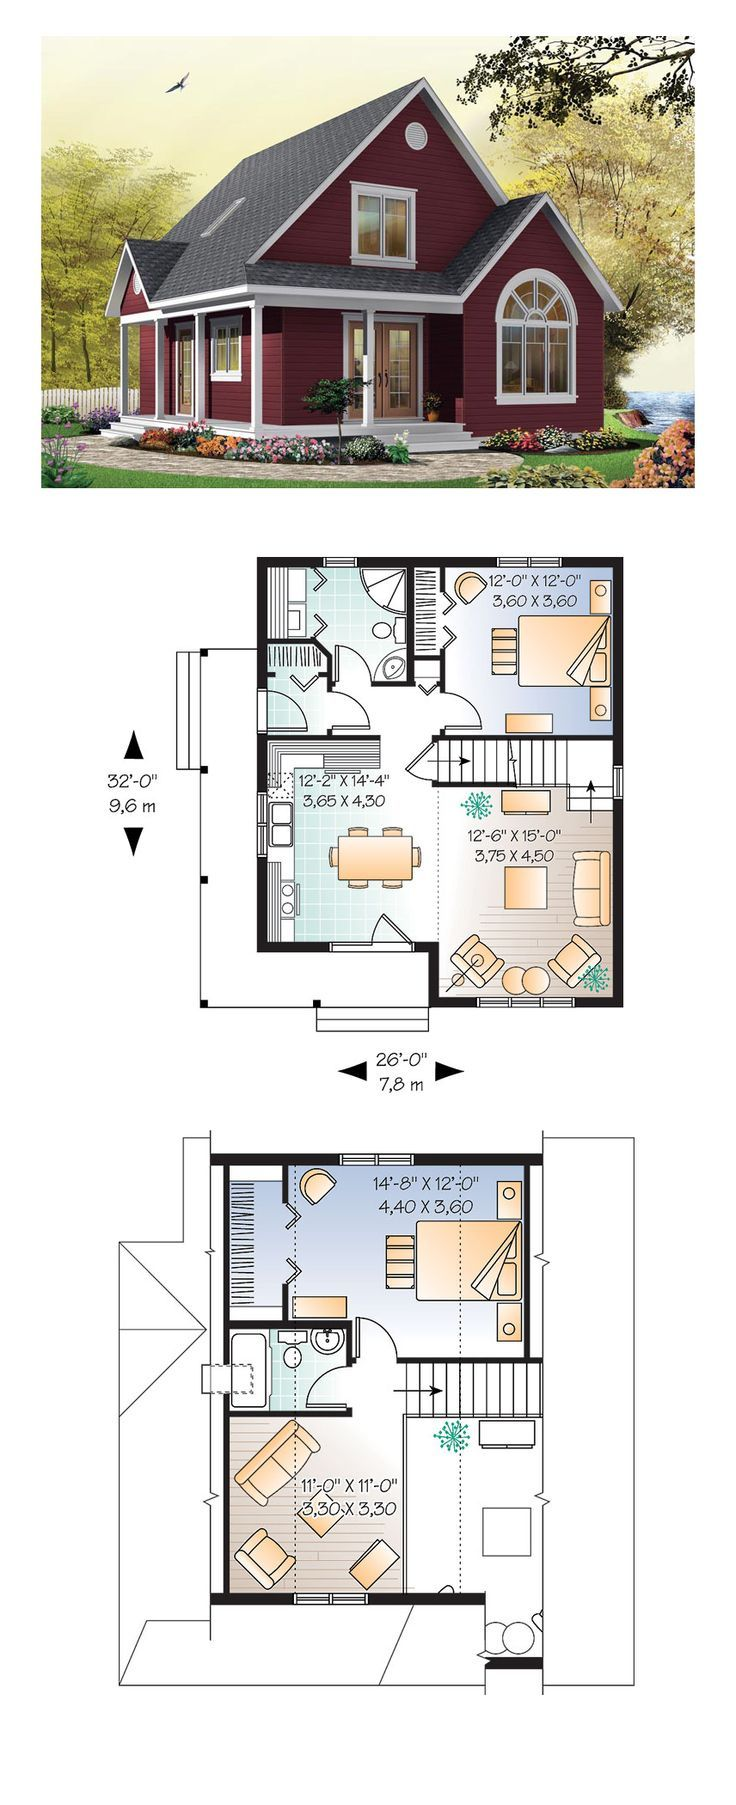 House Plan chp-28554 | Cottage style, House and Decoration